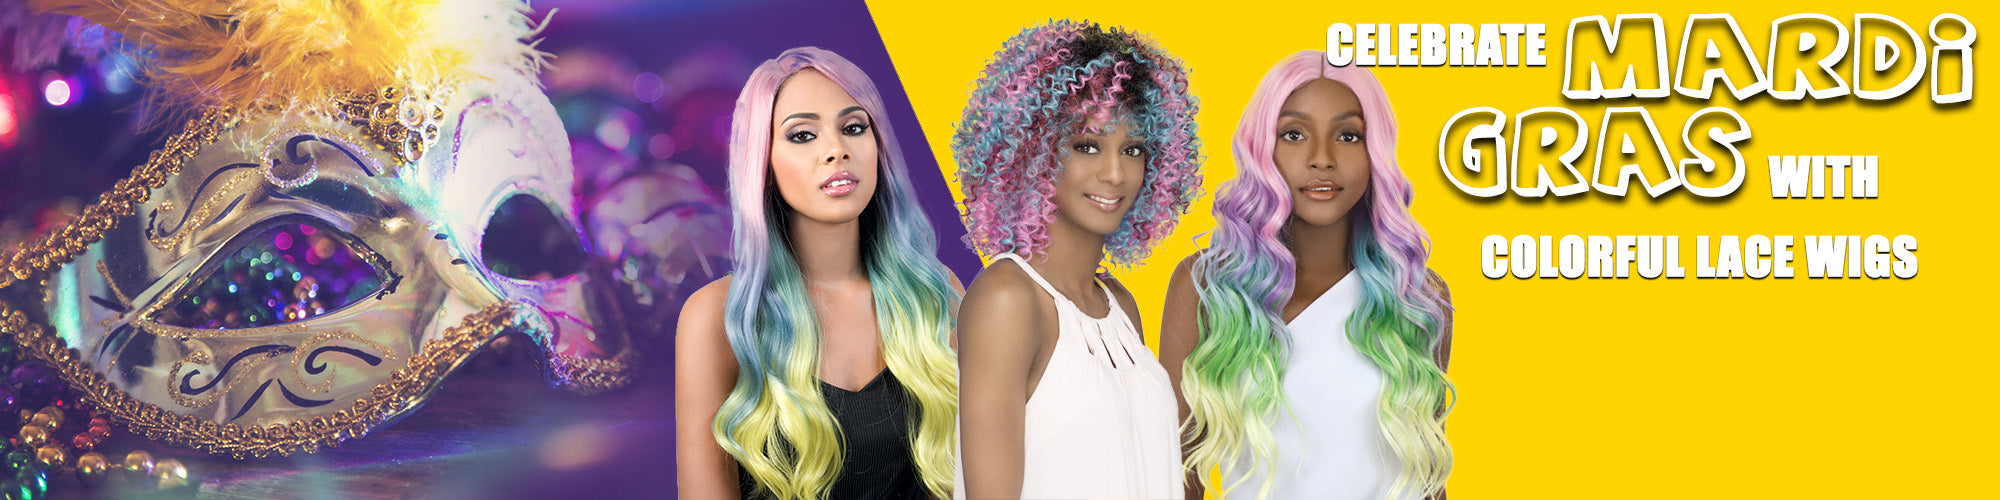 mardi gras color wigs